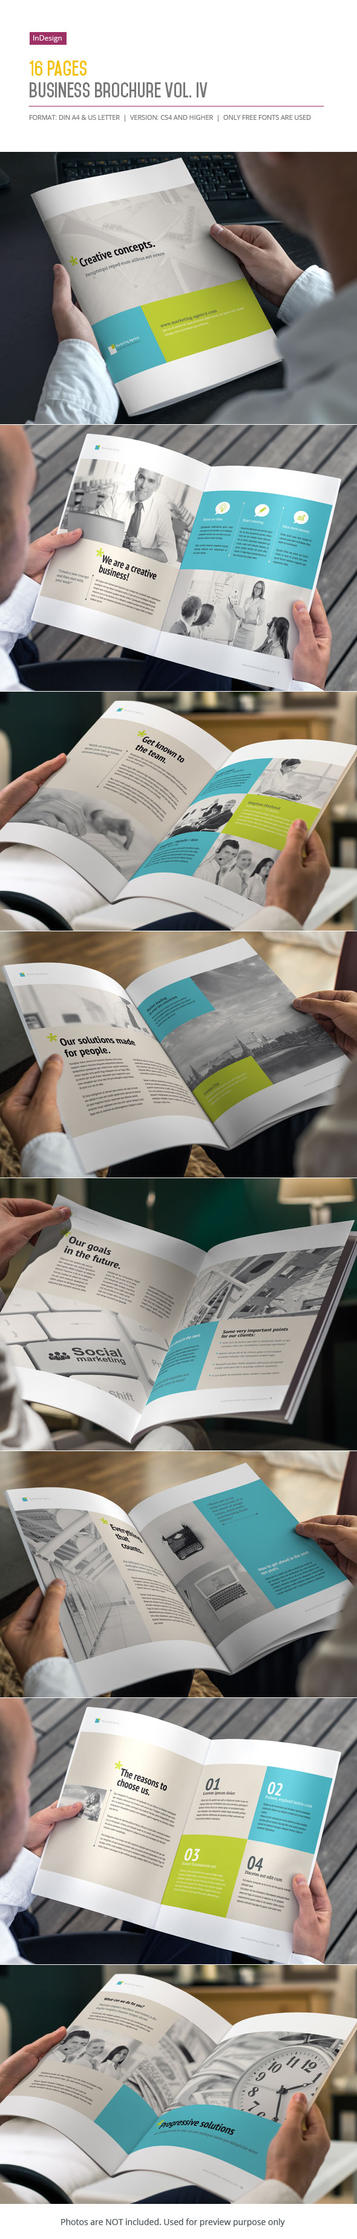 16 Pages Business Brochure Vol. IV by imagearea